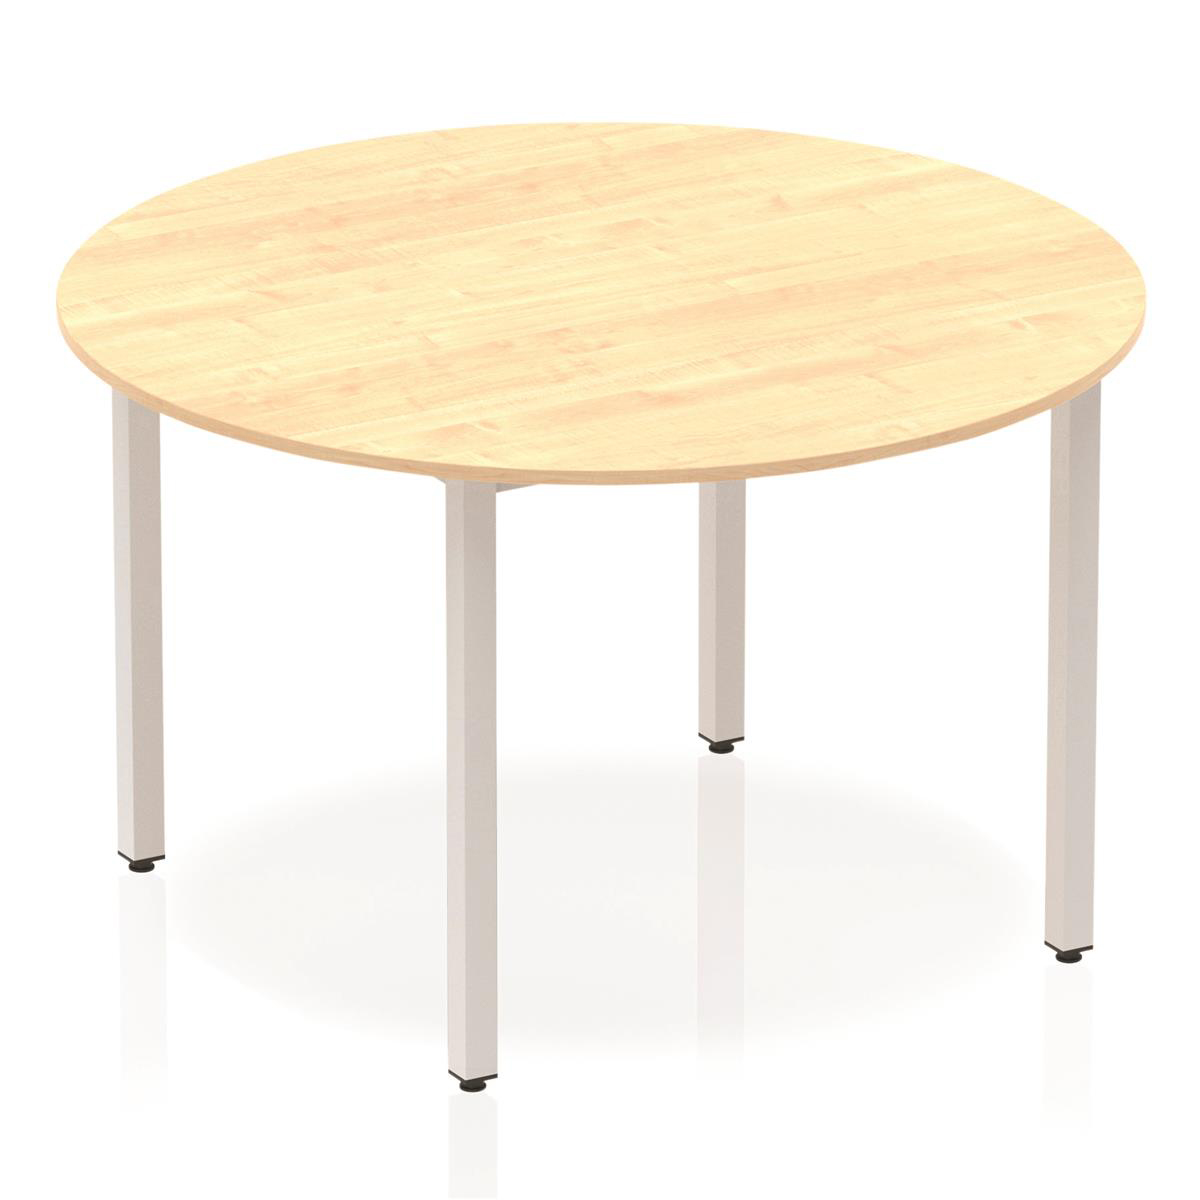 Trexus Circular Box Frame Silver Leg Table 1200mm Maple Ref BF00200